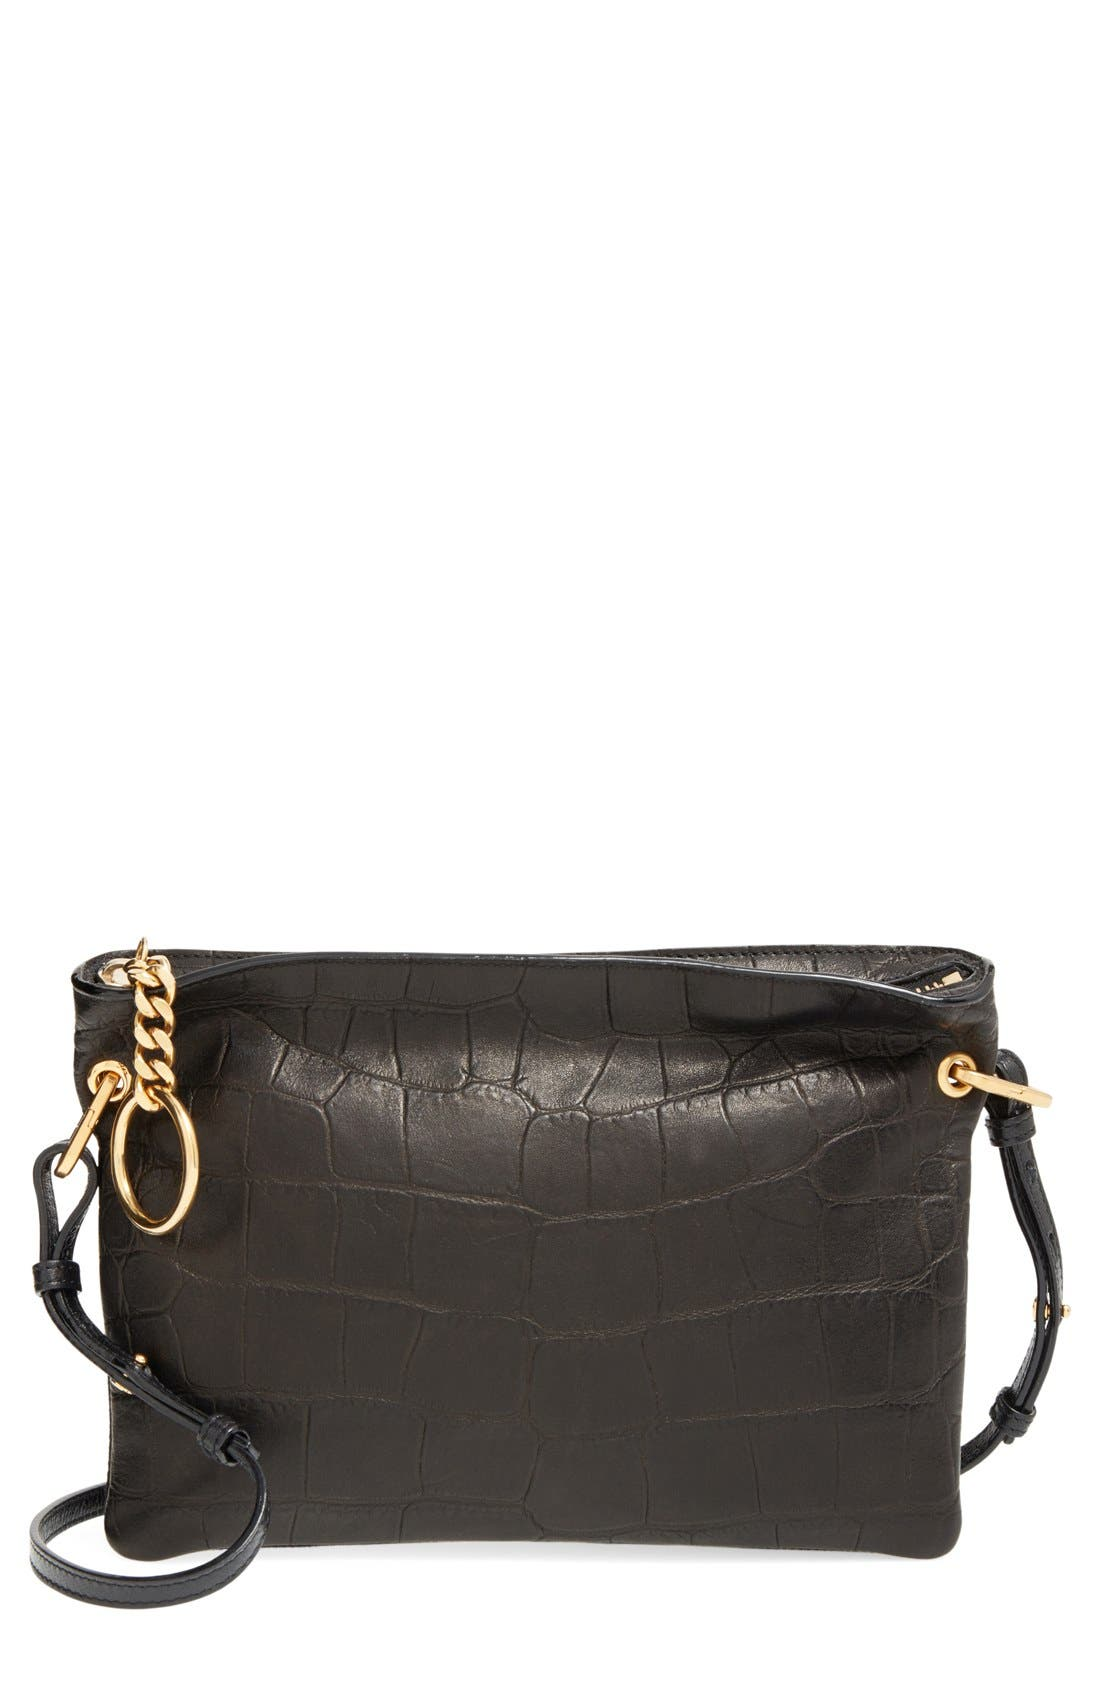 'Mardy' Croc Embossed Leather Crossbody Bag,                         Main,                         color,